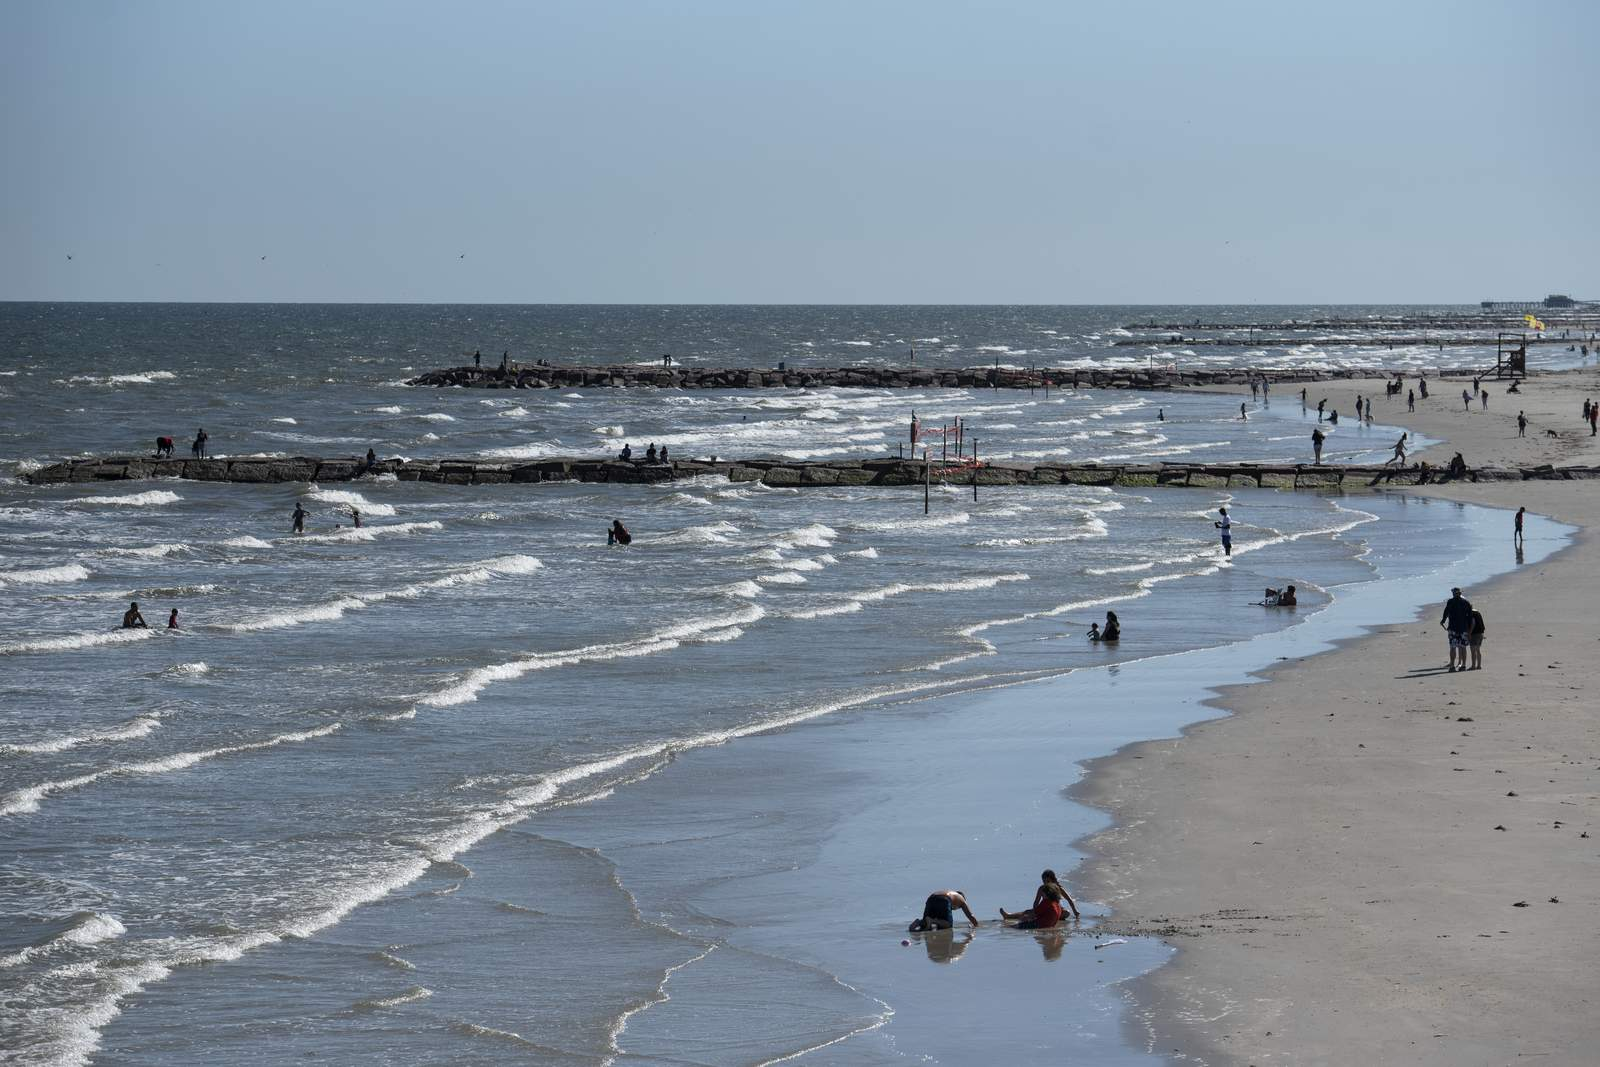 Galveston Halloween 2020 Ask 2: What are the current rules for Galveston beaches?